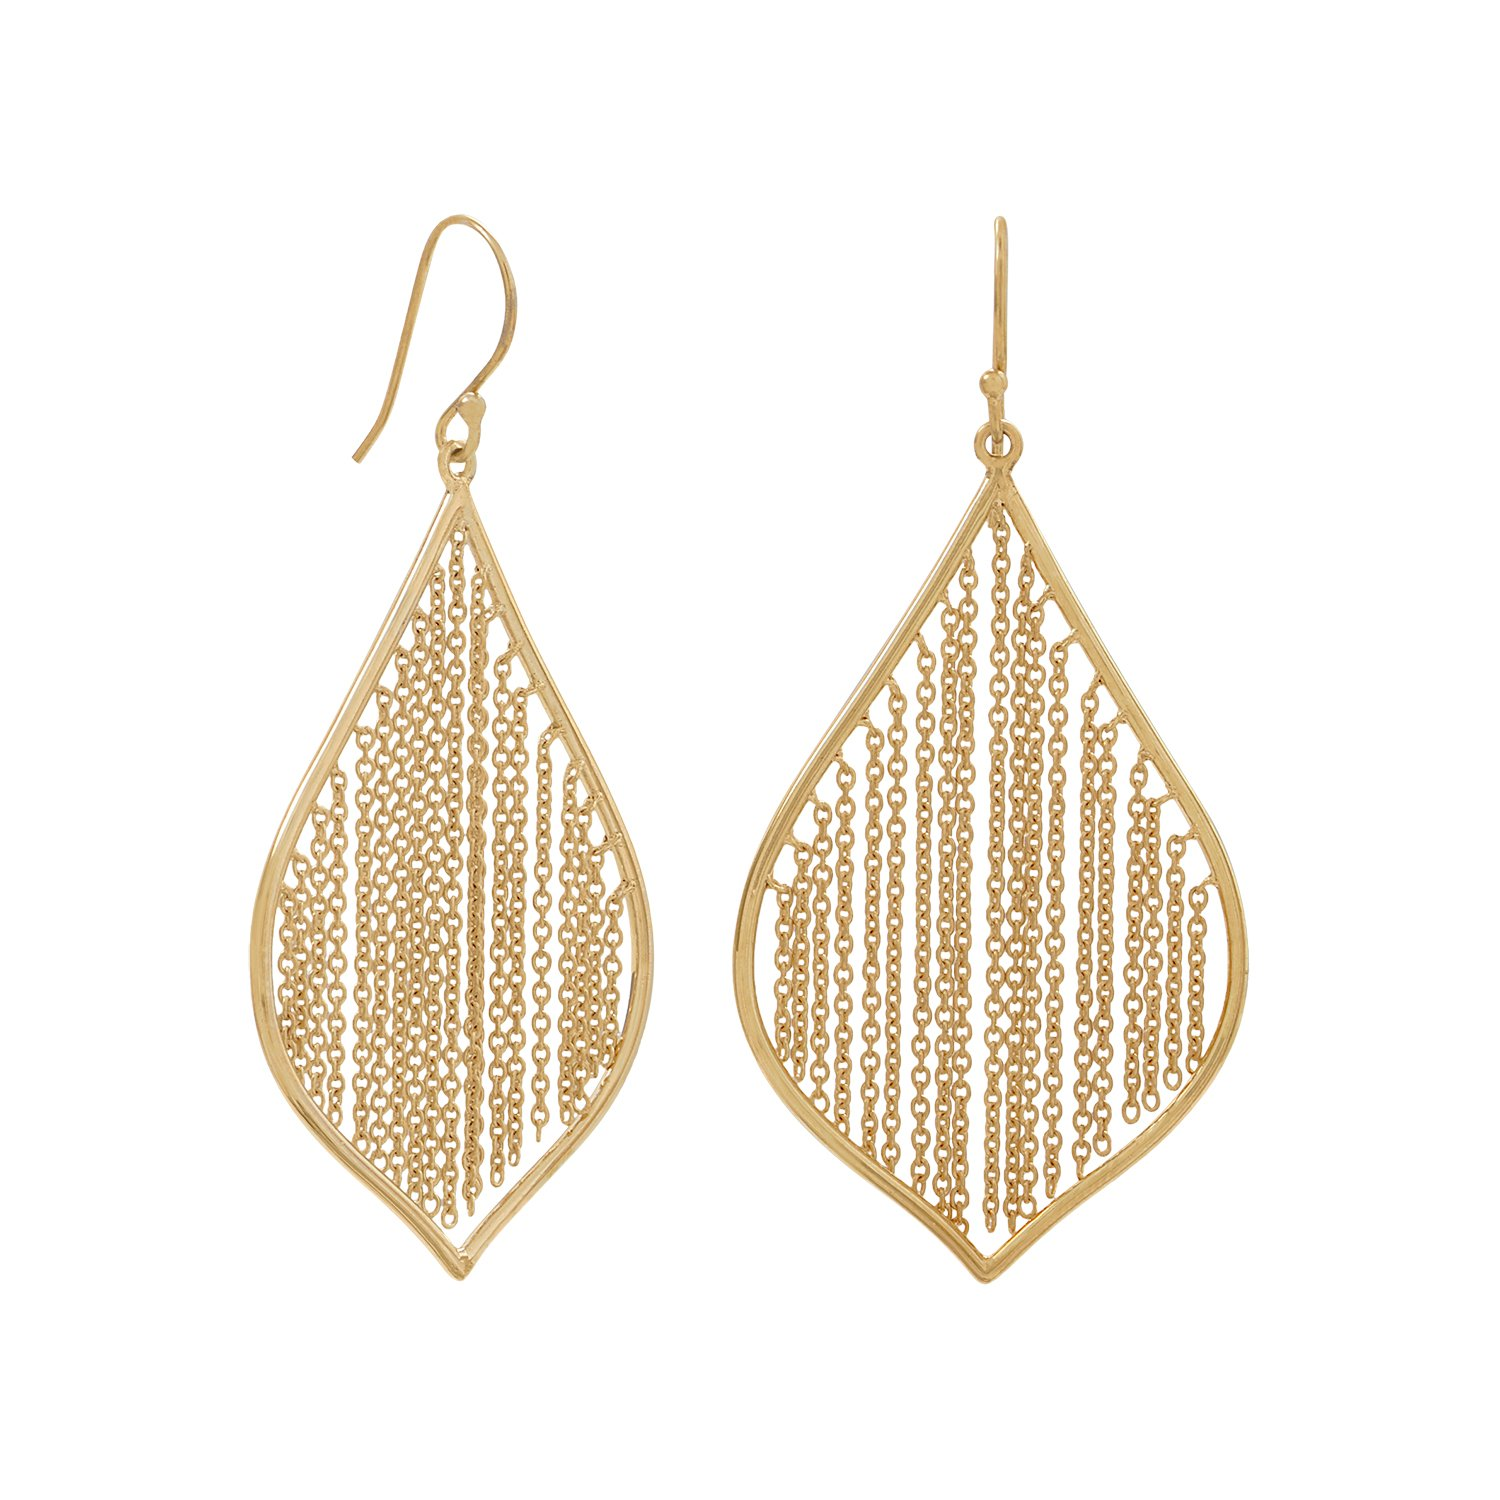 plated silver jewelry sterling earrings triangle goldplated az drop dangle modern pfs bling gold